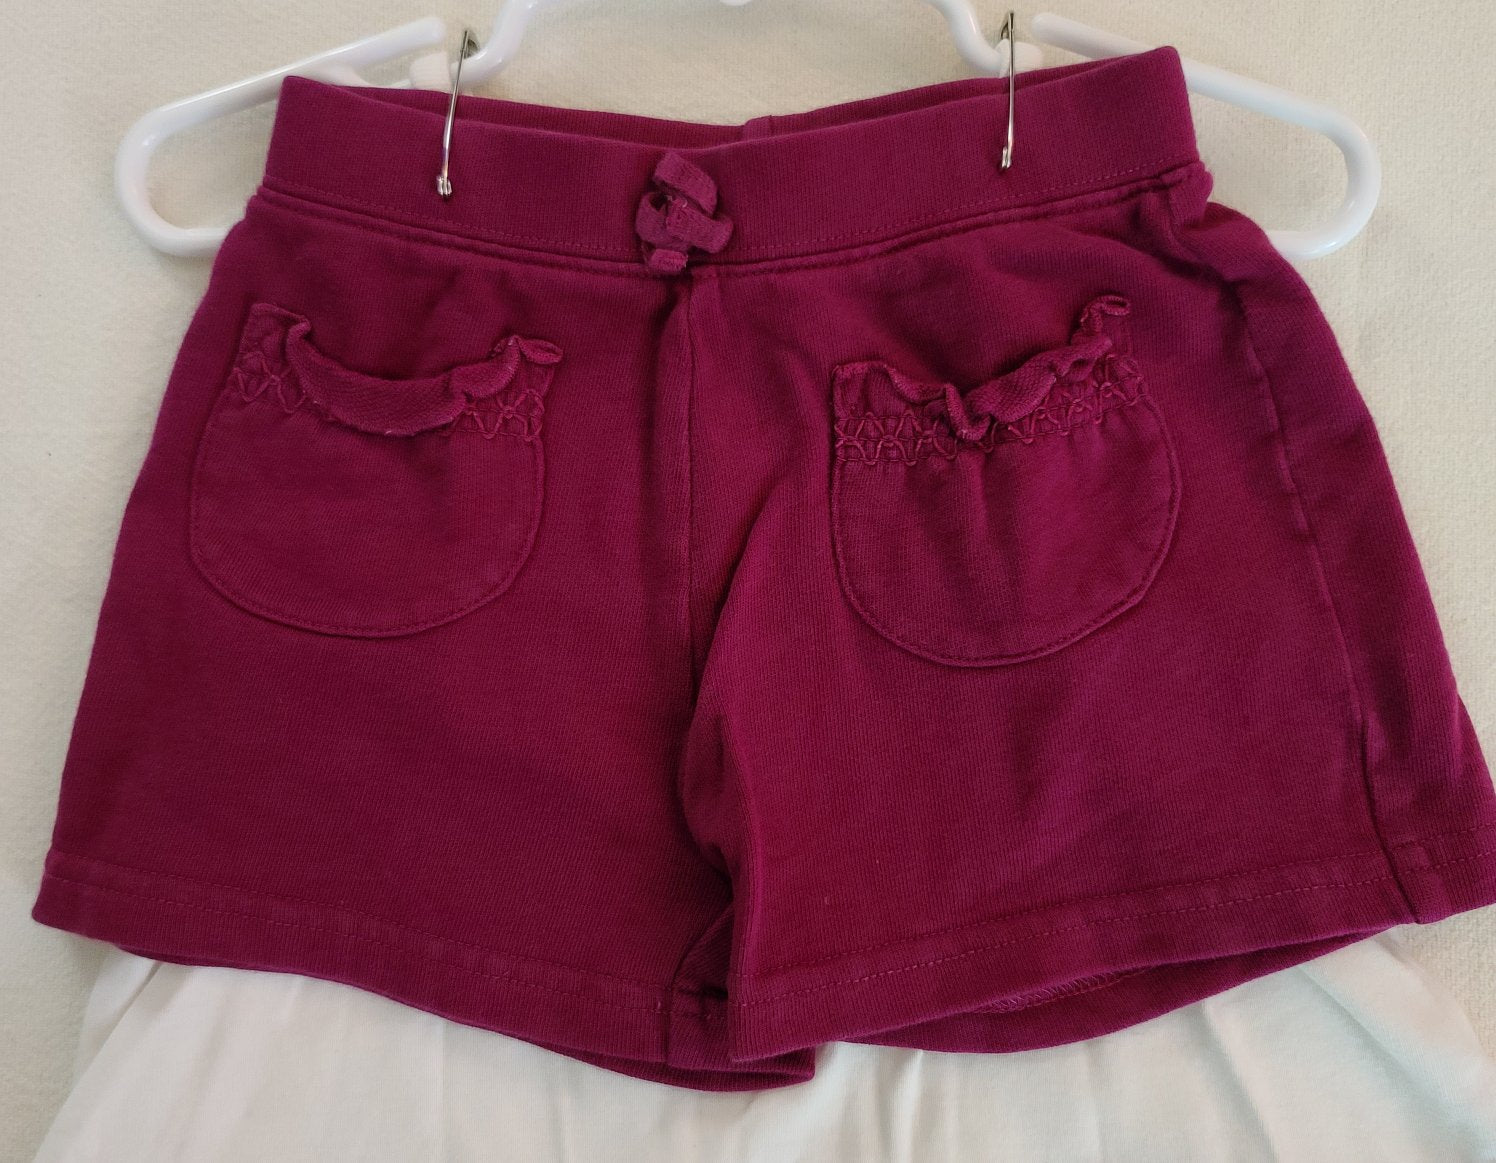 GYMBOREE 2 pc set: halter top and shorts; Girls size 18-24 months